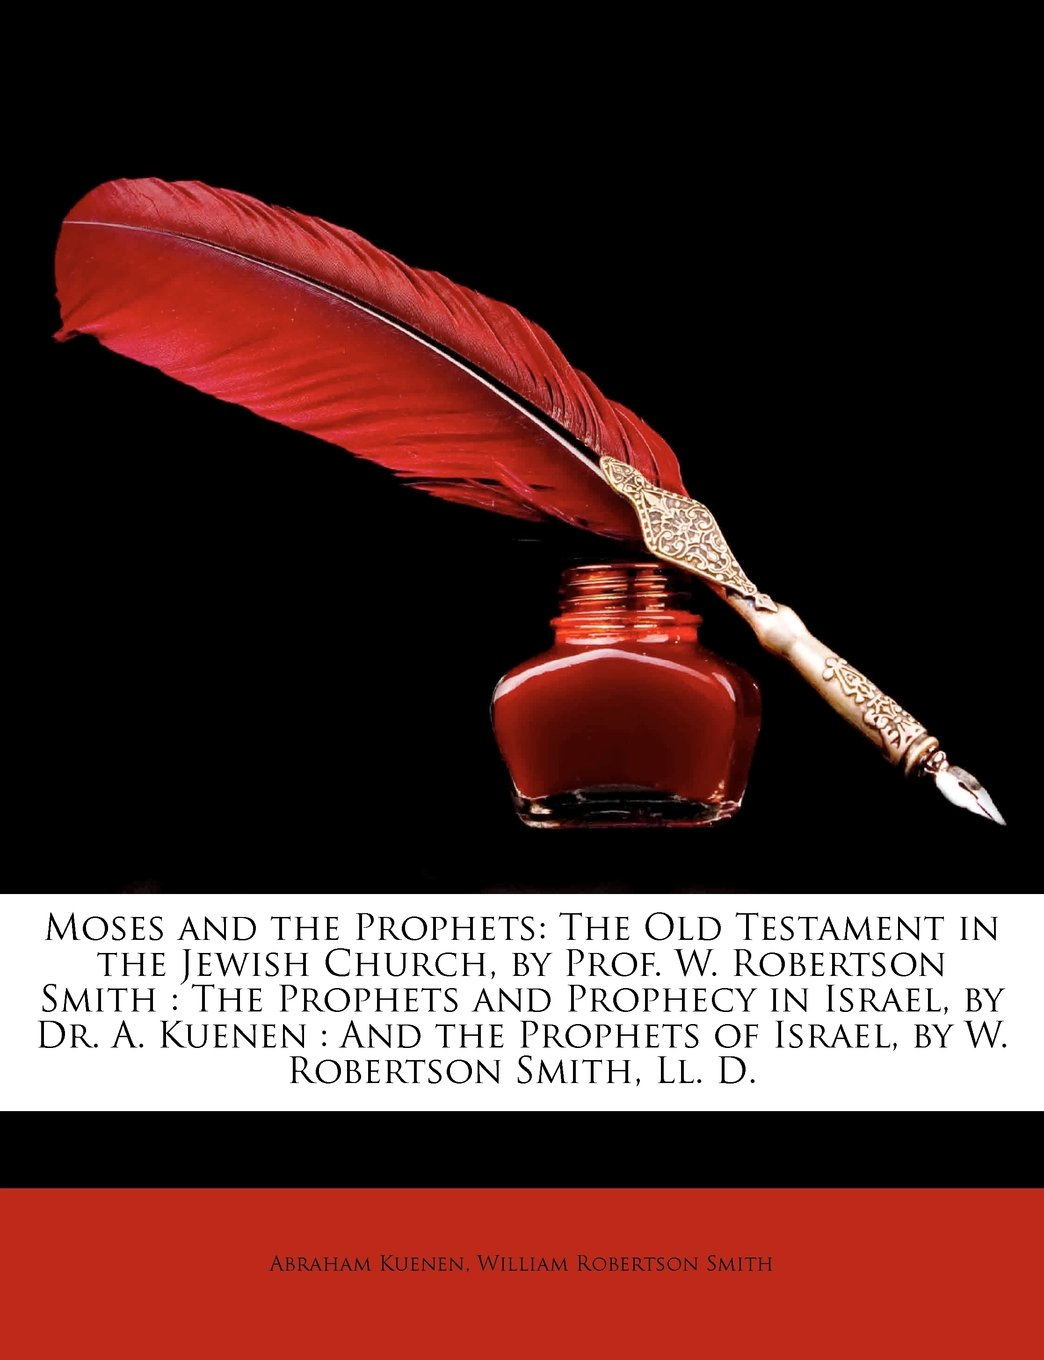 Moses and the Prophets: The Old Testament in the Jewish Church, by Prof. W. Robertson Smith : The Prophets and Prophecy in Israel, by Dr. A. Kuenen : ... of Israel, by W. Robertson Smith, Ll. D. ebook